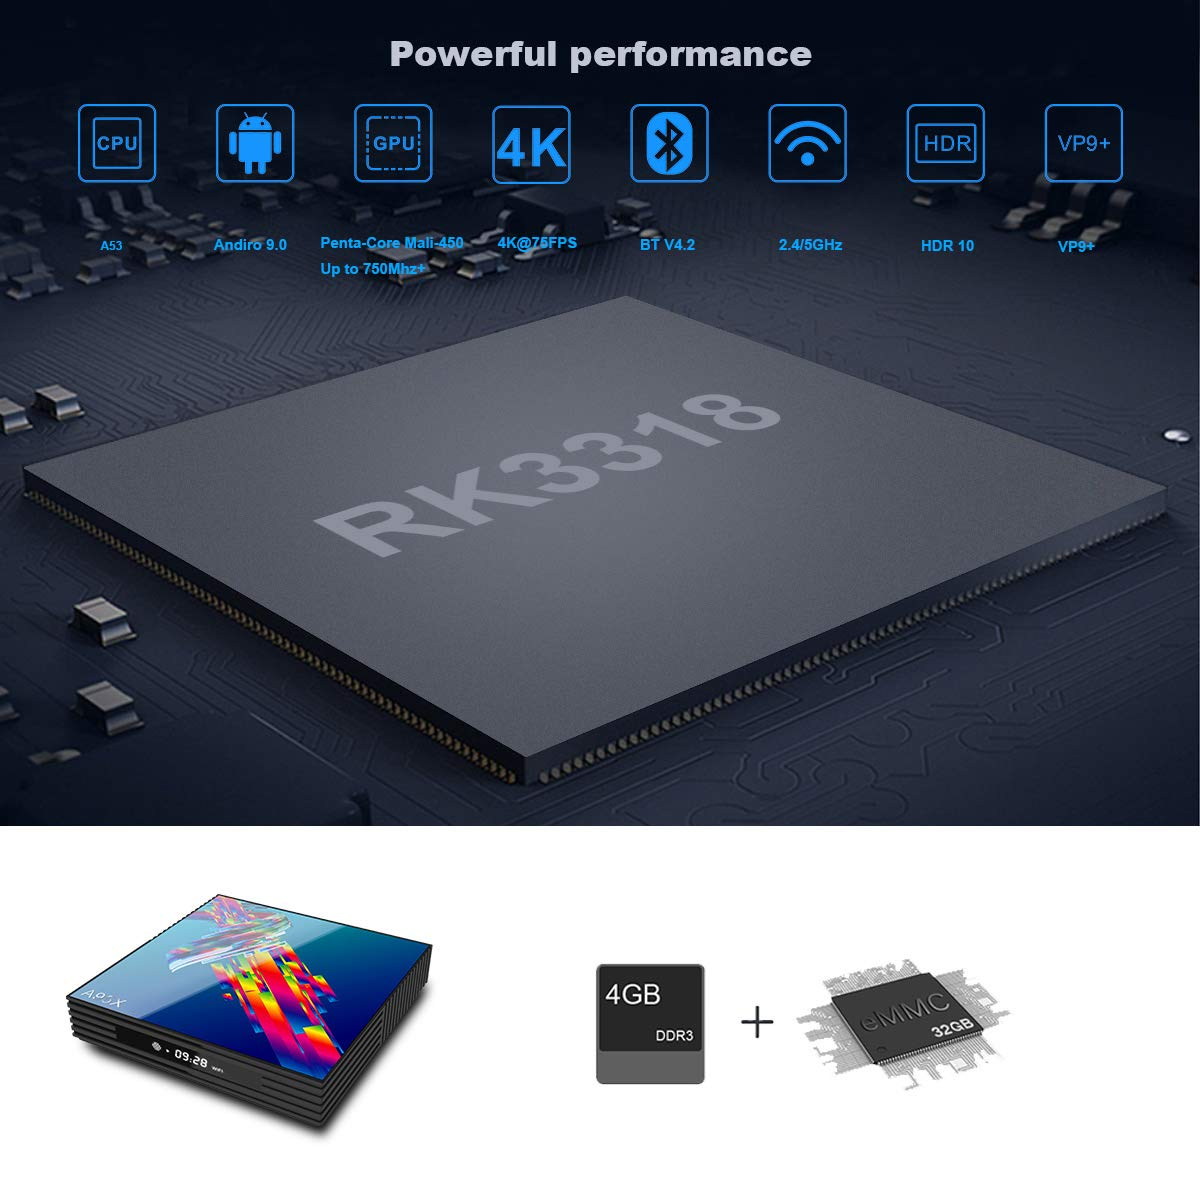 2019 newest Version 2.4G+5G Dual band WIFI USB 3.0 Android Box with HD//H.265//4K//3D//BT4.2 32GB】 TV Box Quad-core Cortex-A53 RK3318 A95X R3 TV Box Android 9.0 【4GB